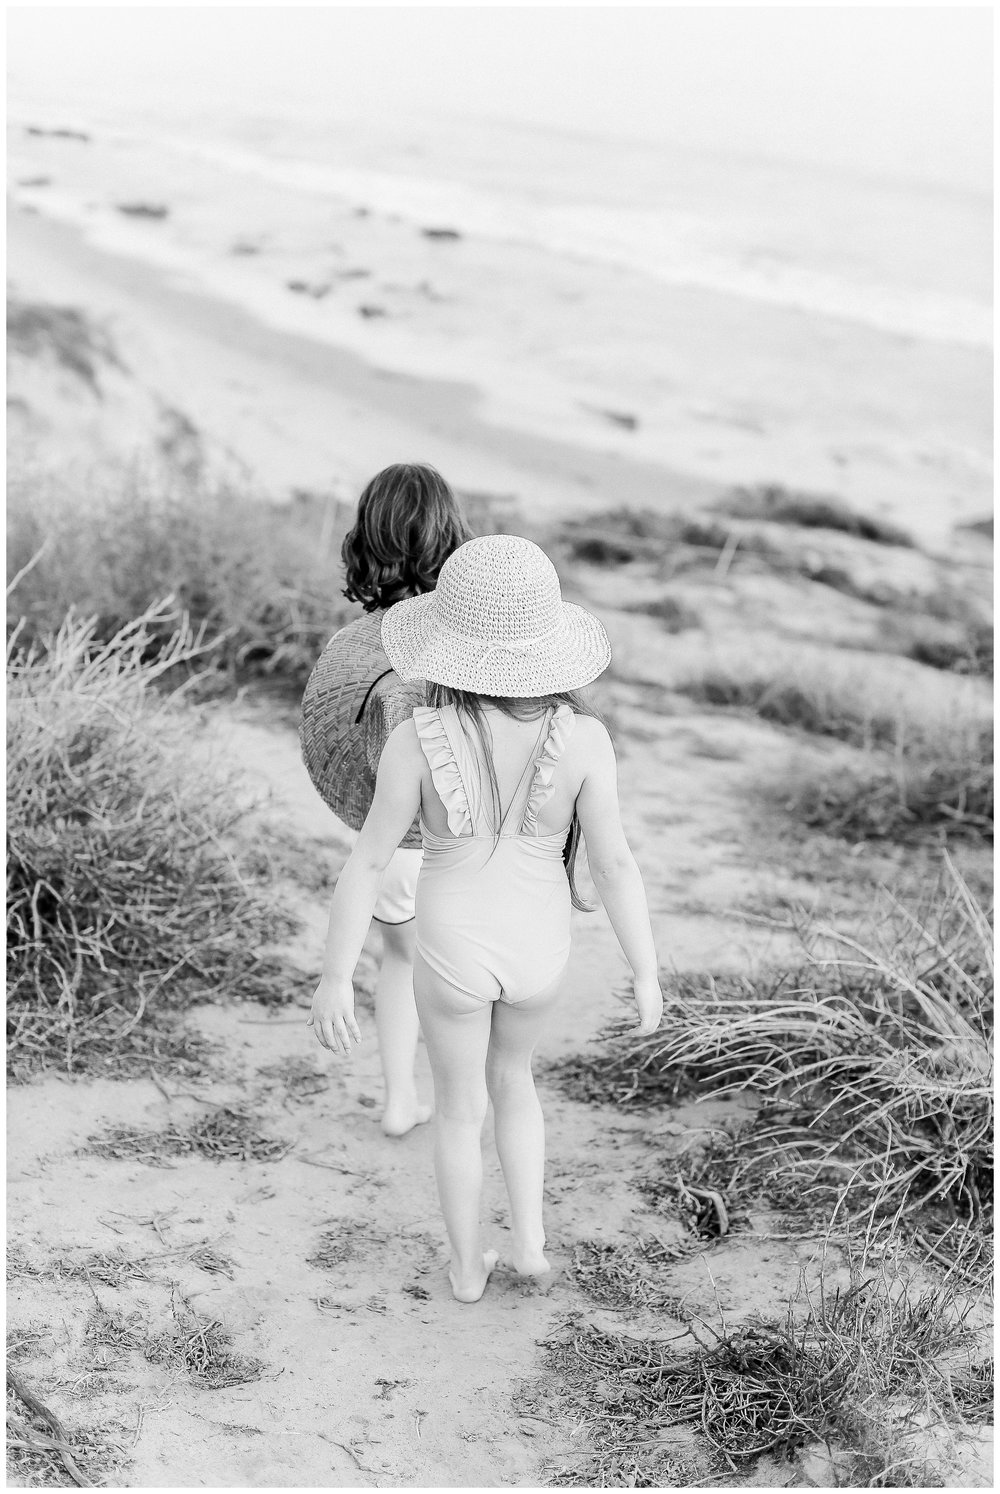 Crystal-Cove-State-Beach-Motherhood- Session-Crystal-Cove-Newport-Beach-Family-Photographer-Crystal-Cove-Minnow-Swim-Cori-Kleckner-Photography-Orange-County-Vacation-Family-Photos-Session-_0865.jpg